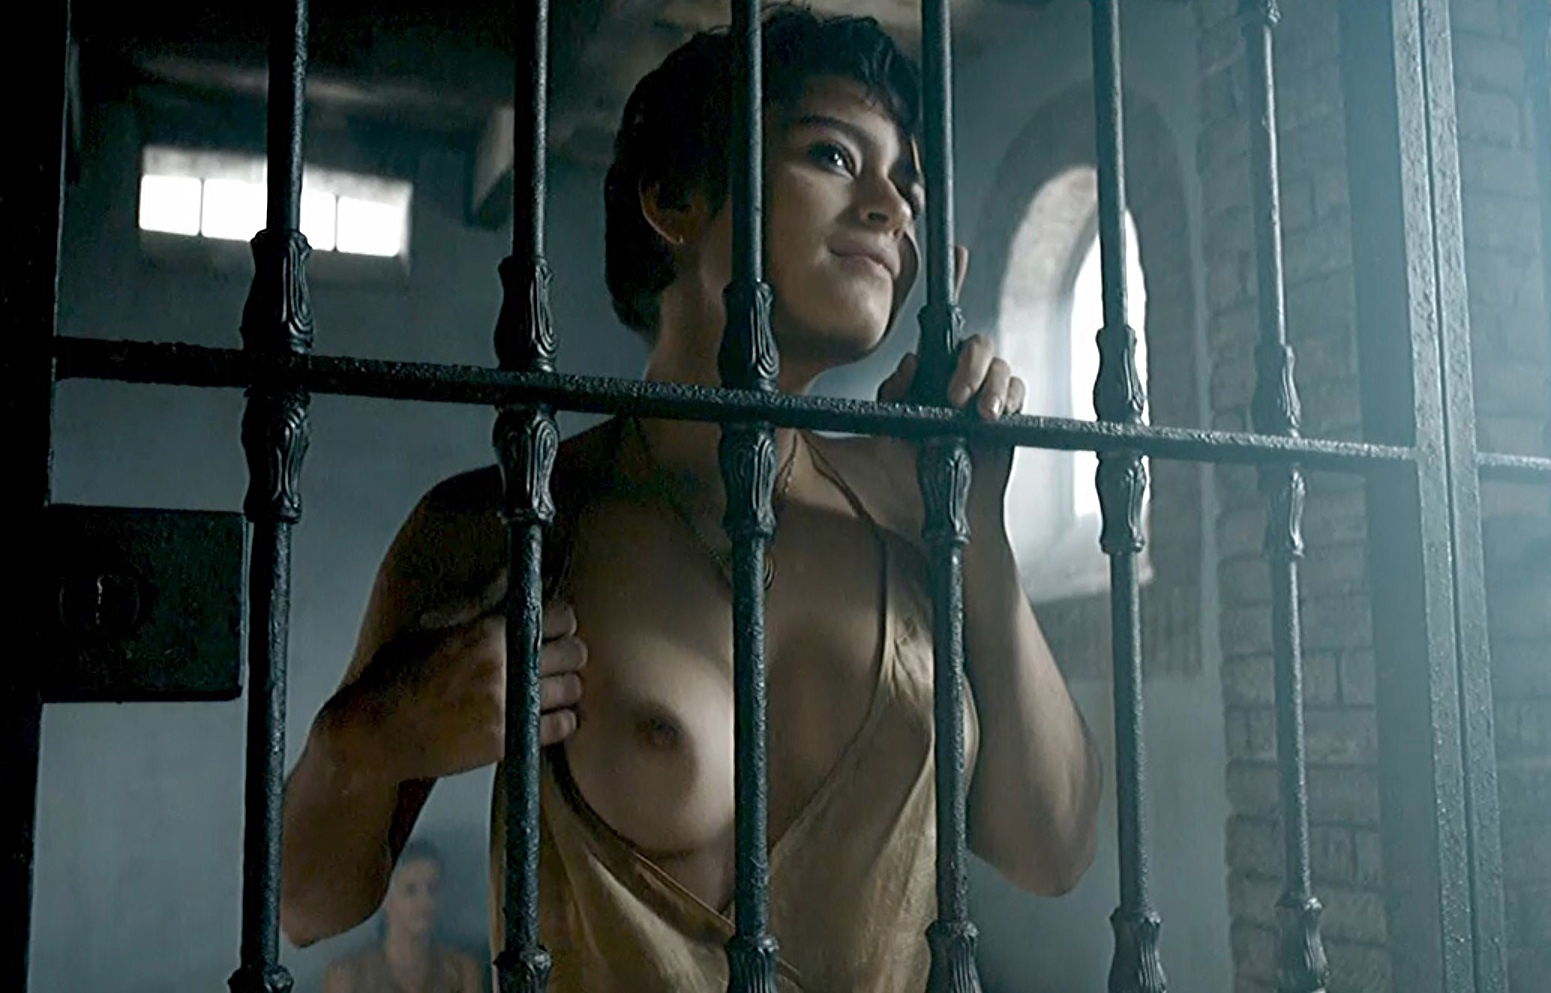 Rosabell Laurenti Sellers Nude Photos and Videos